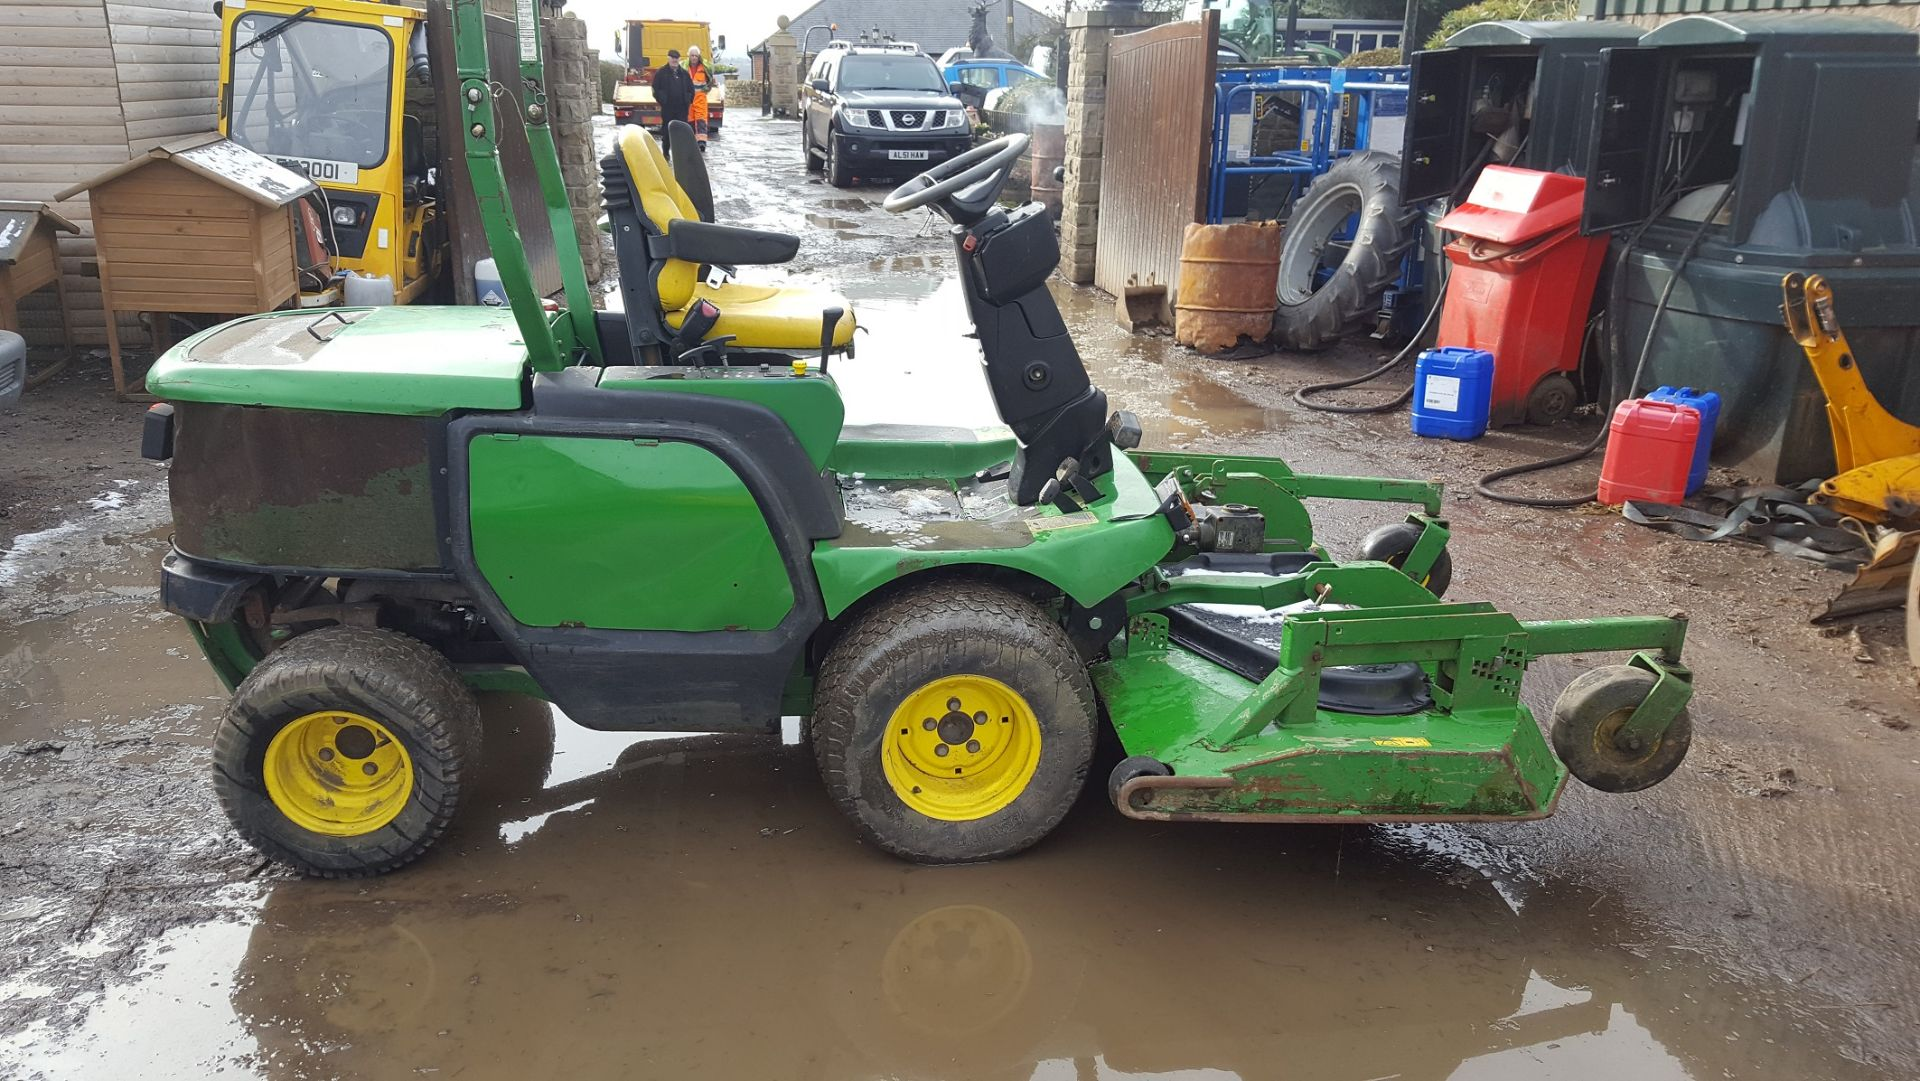 2006 JOHN DEERE 1545 RIDE ON LAWN MOWER, EX GATESHEAD COUNCIL *PLUS VAT* - Image 4 of 8